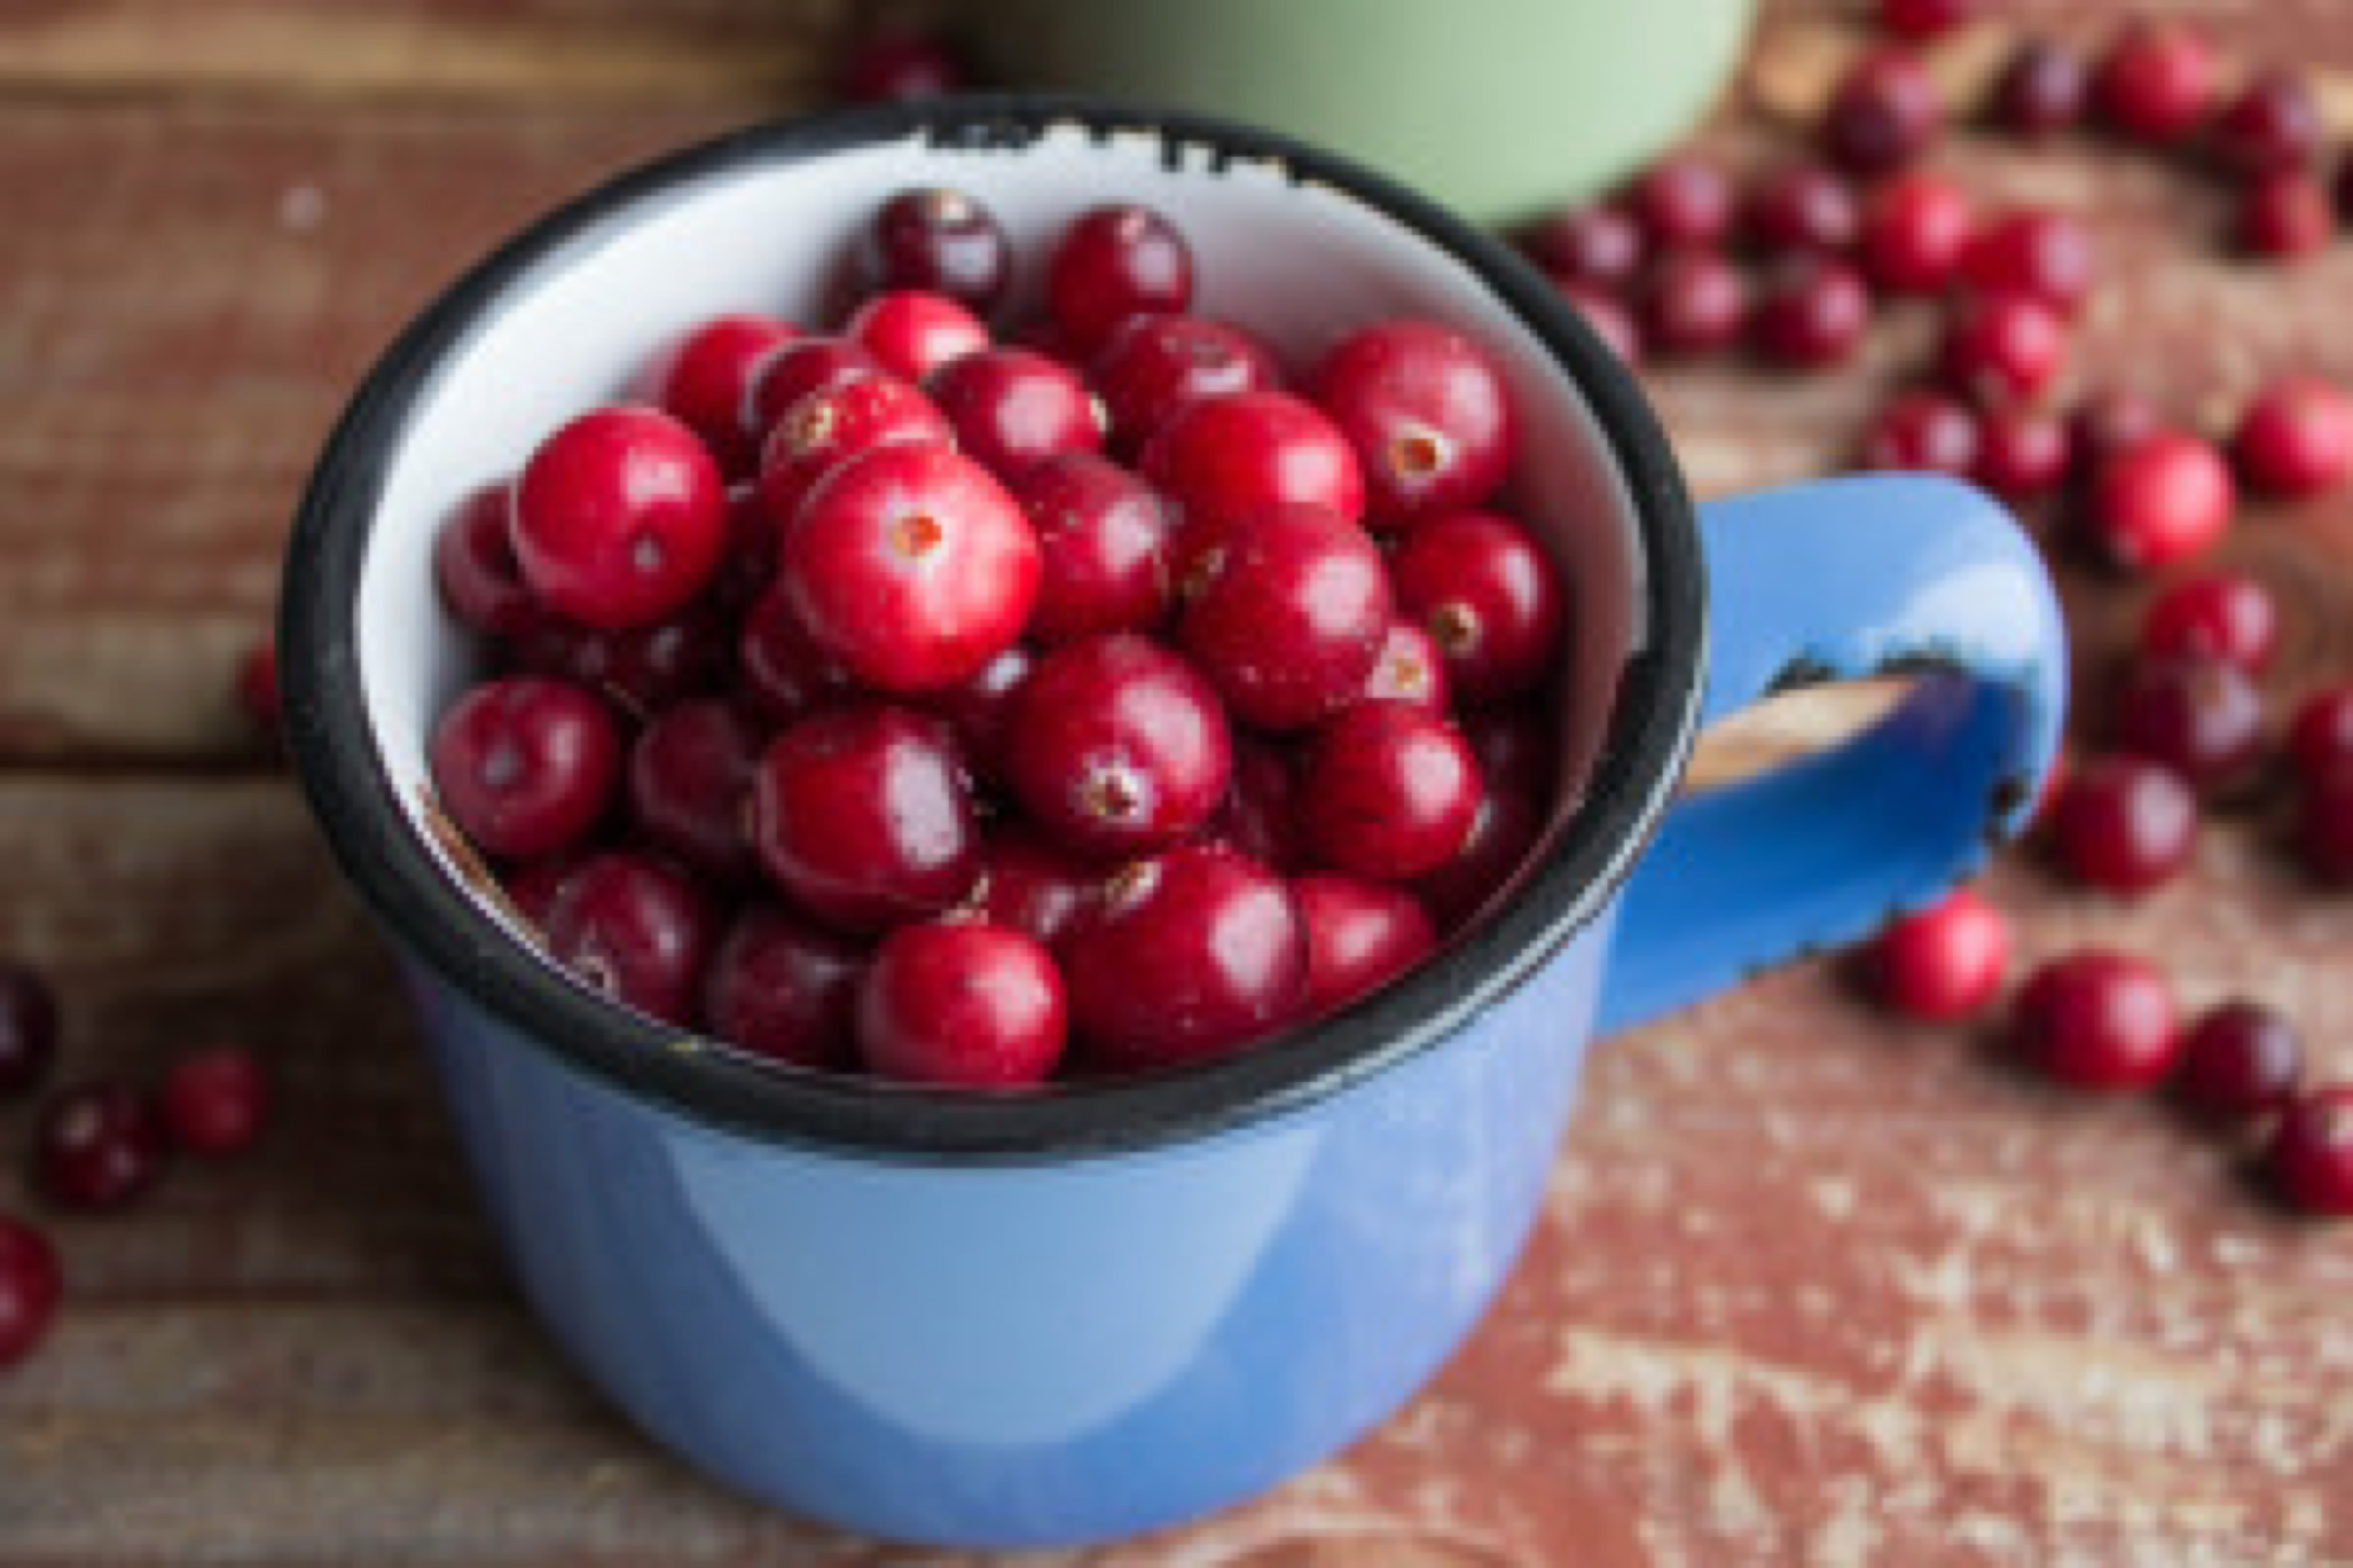 ripe cranberries in cups on a wooden surface